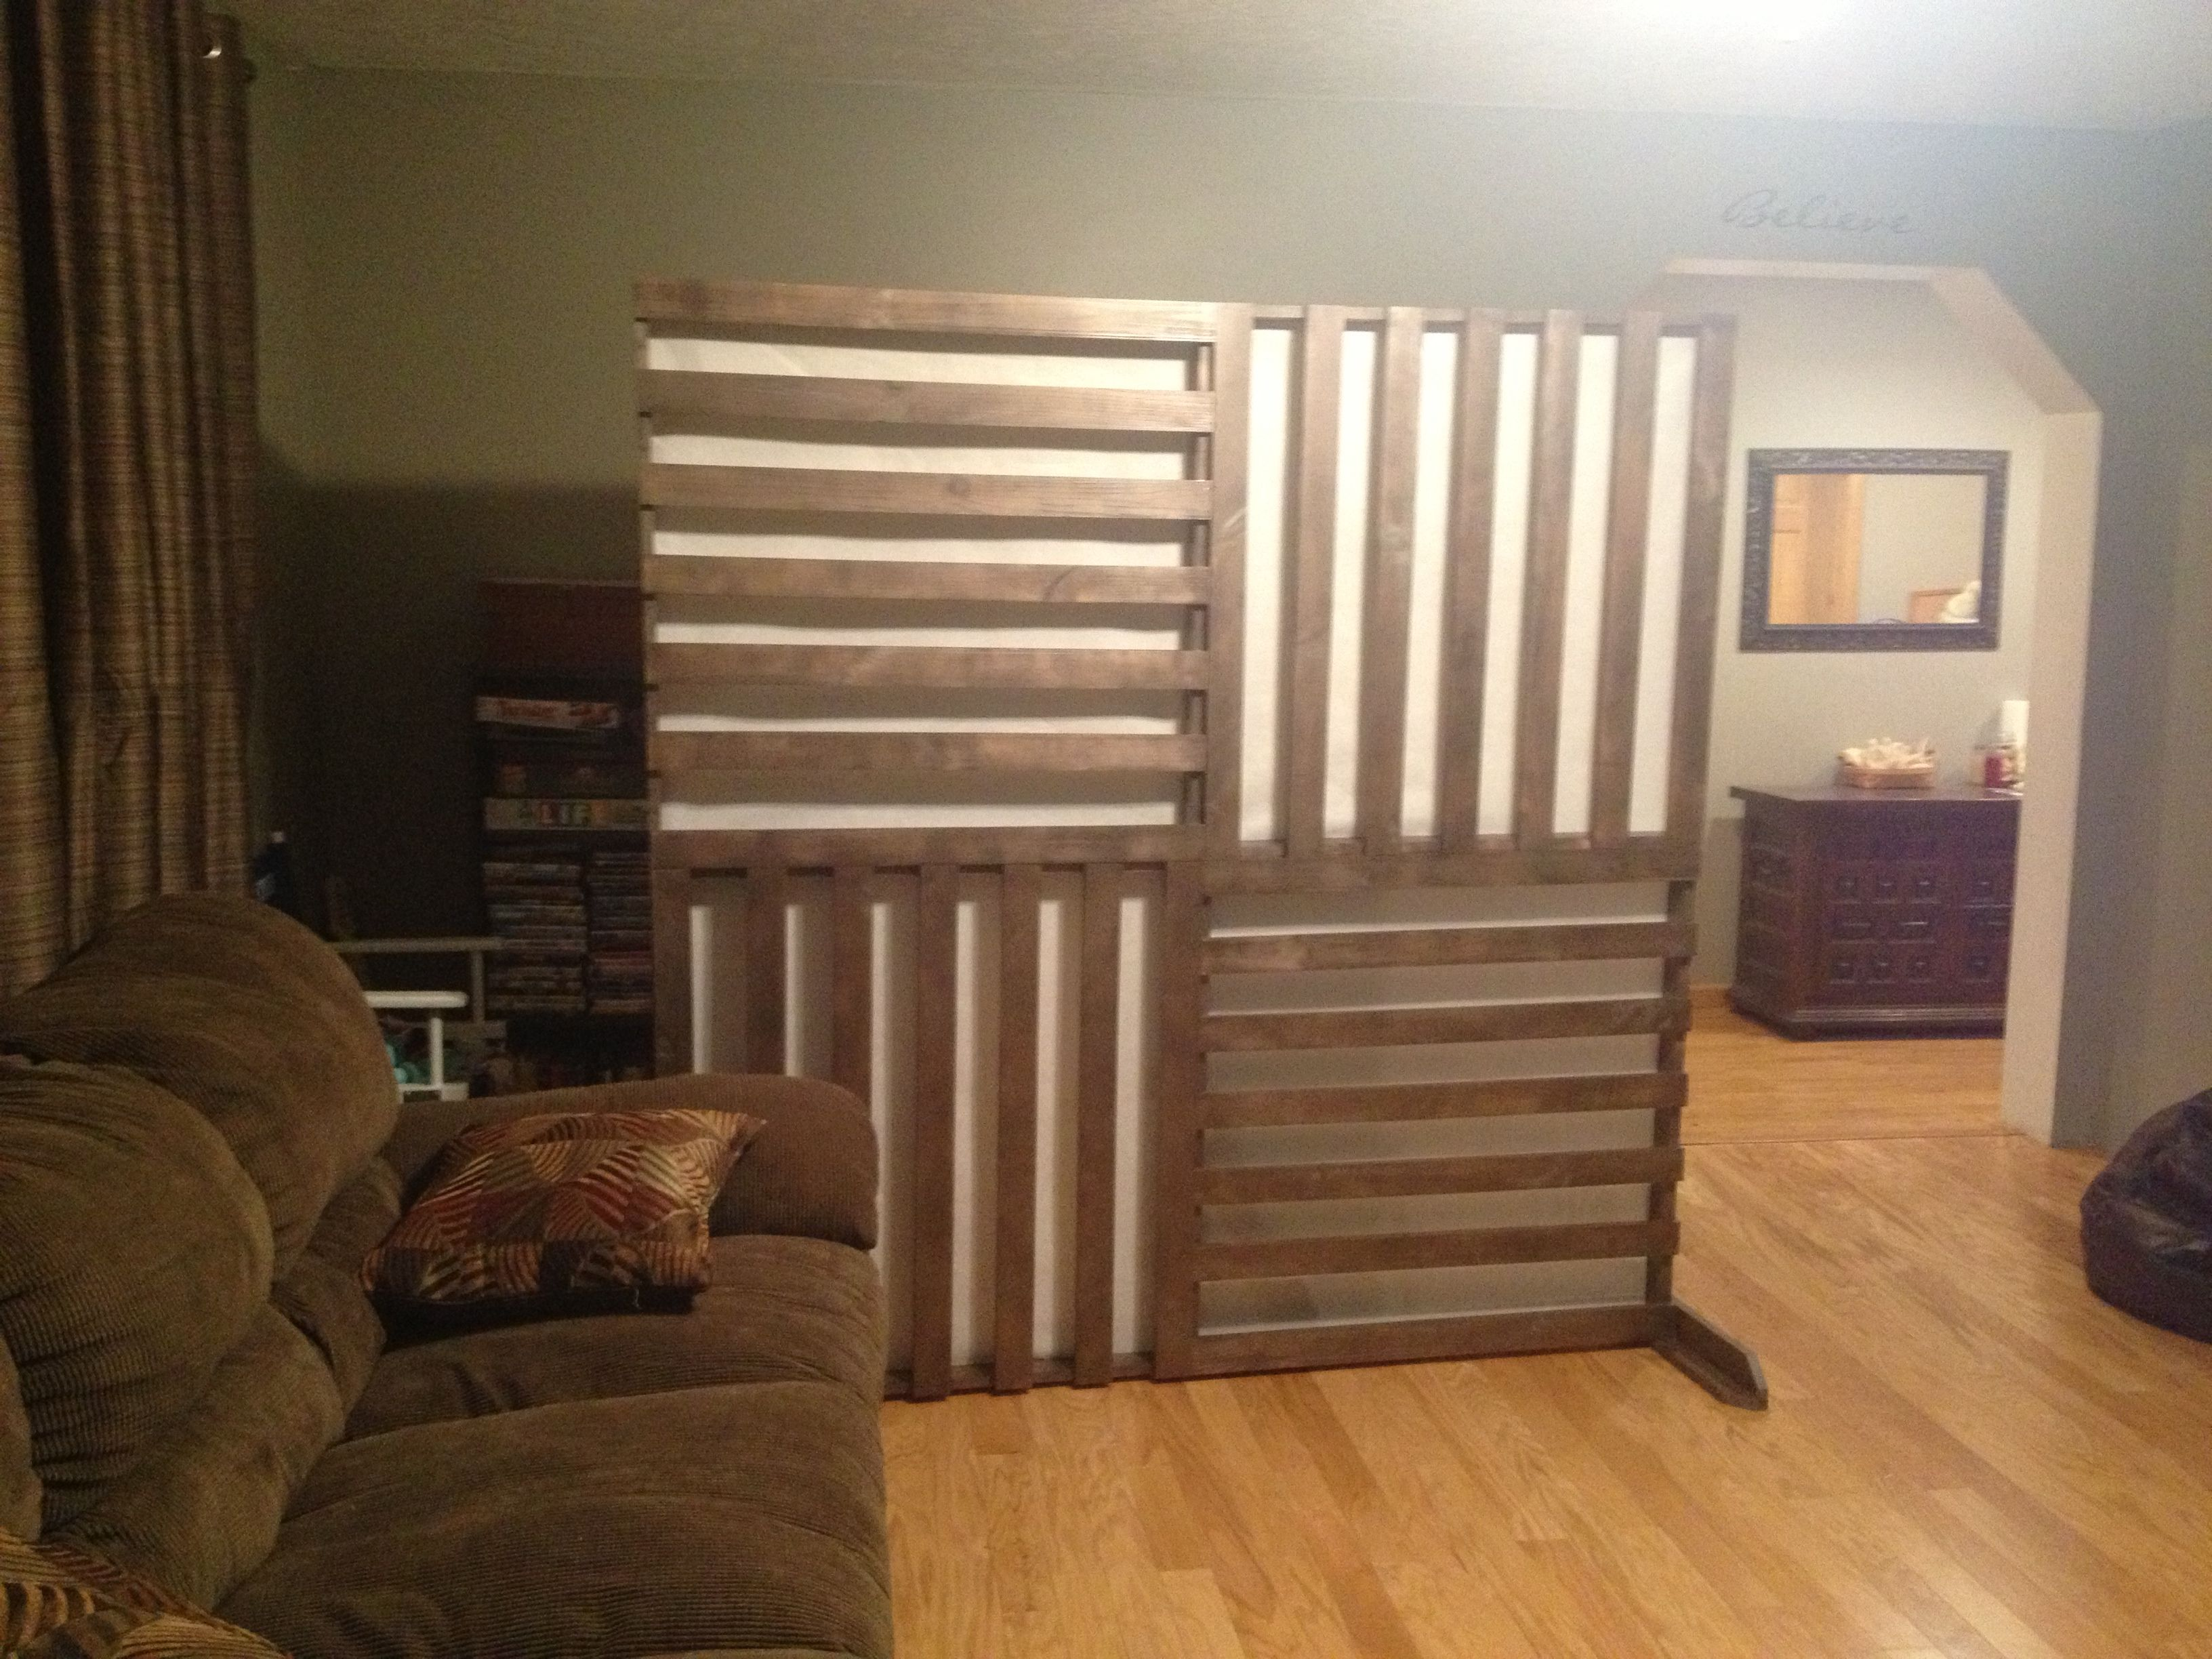 DIY wall divider/ screen pallet inspired with rice paper